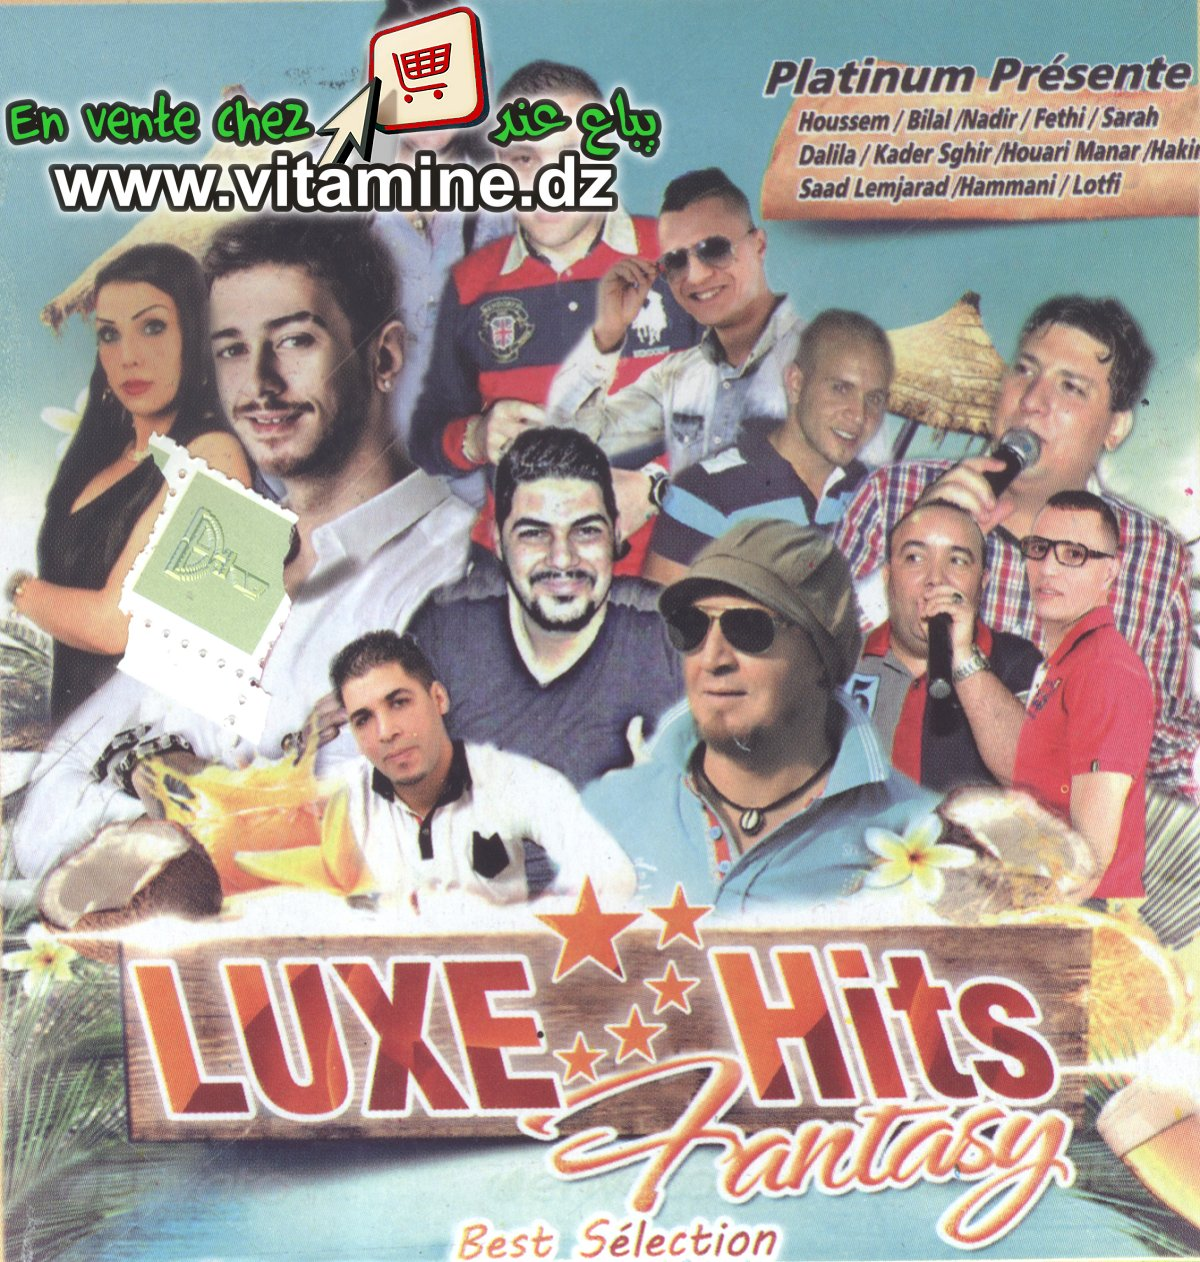 Luxe Hits Fantasy - Compilation